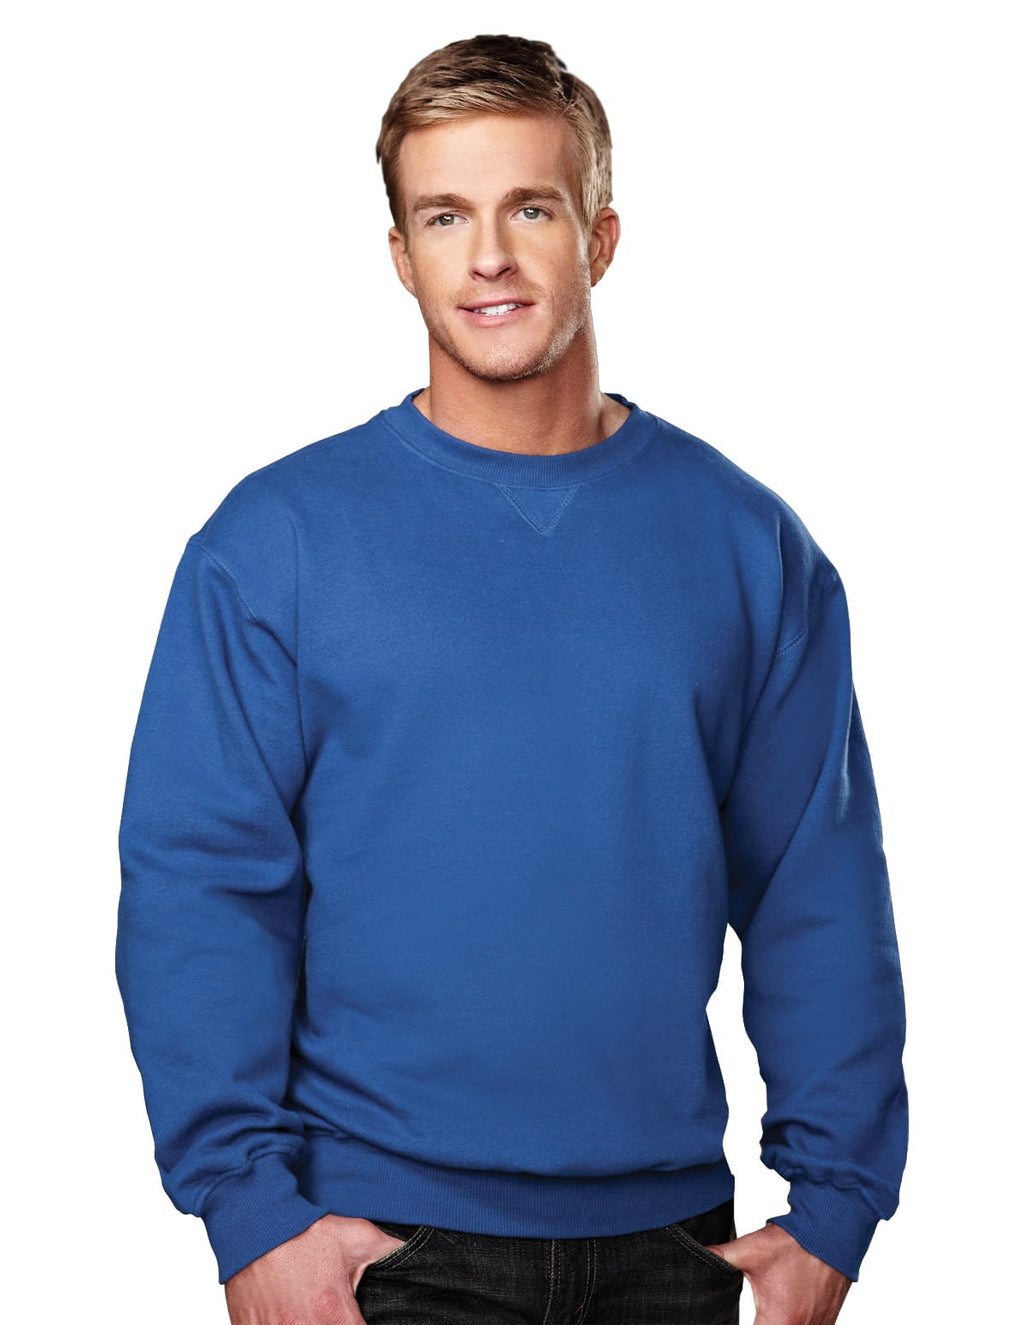 Tri-Mountain 10oz Heavyweight Crew Sweatshirt-4